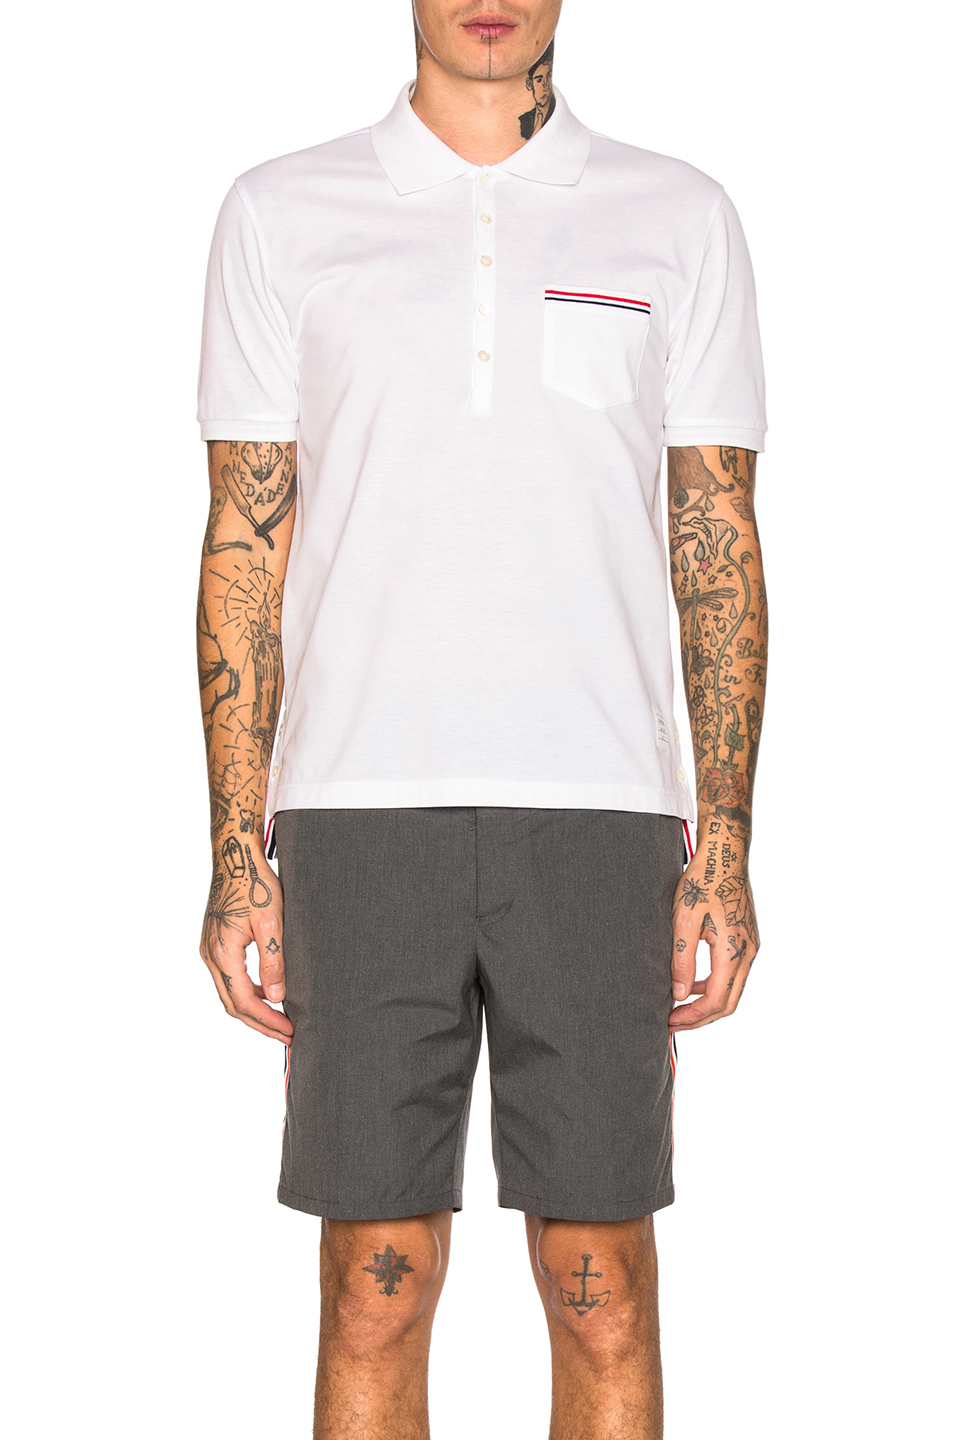 Photo of Thom Browne Short Sleeve Polo Shirt in White - shop Thom Browne menswear